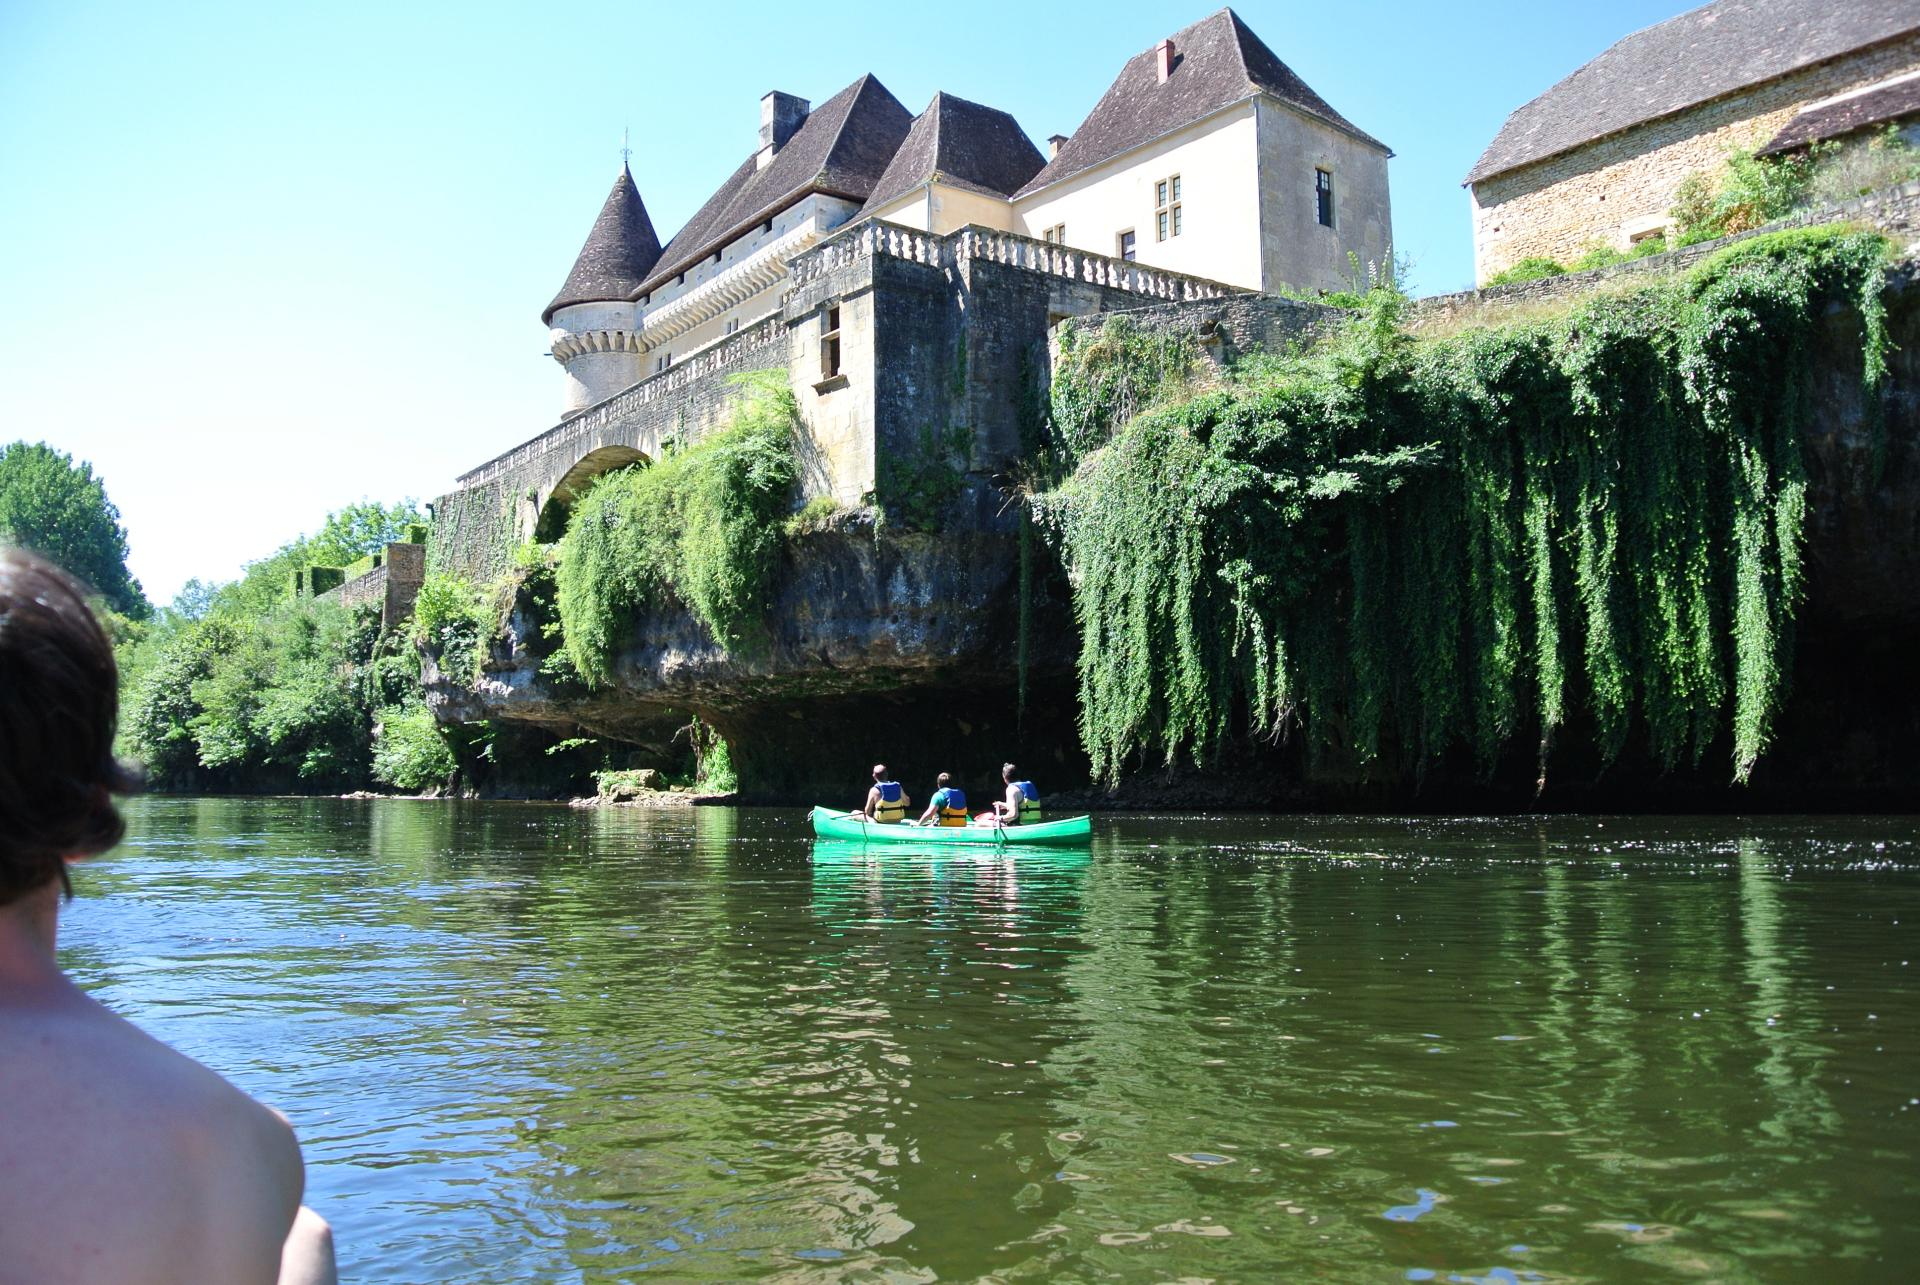 Canoe in the Vézère